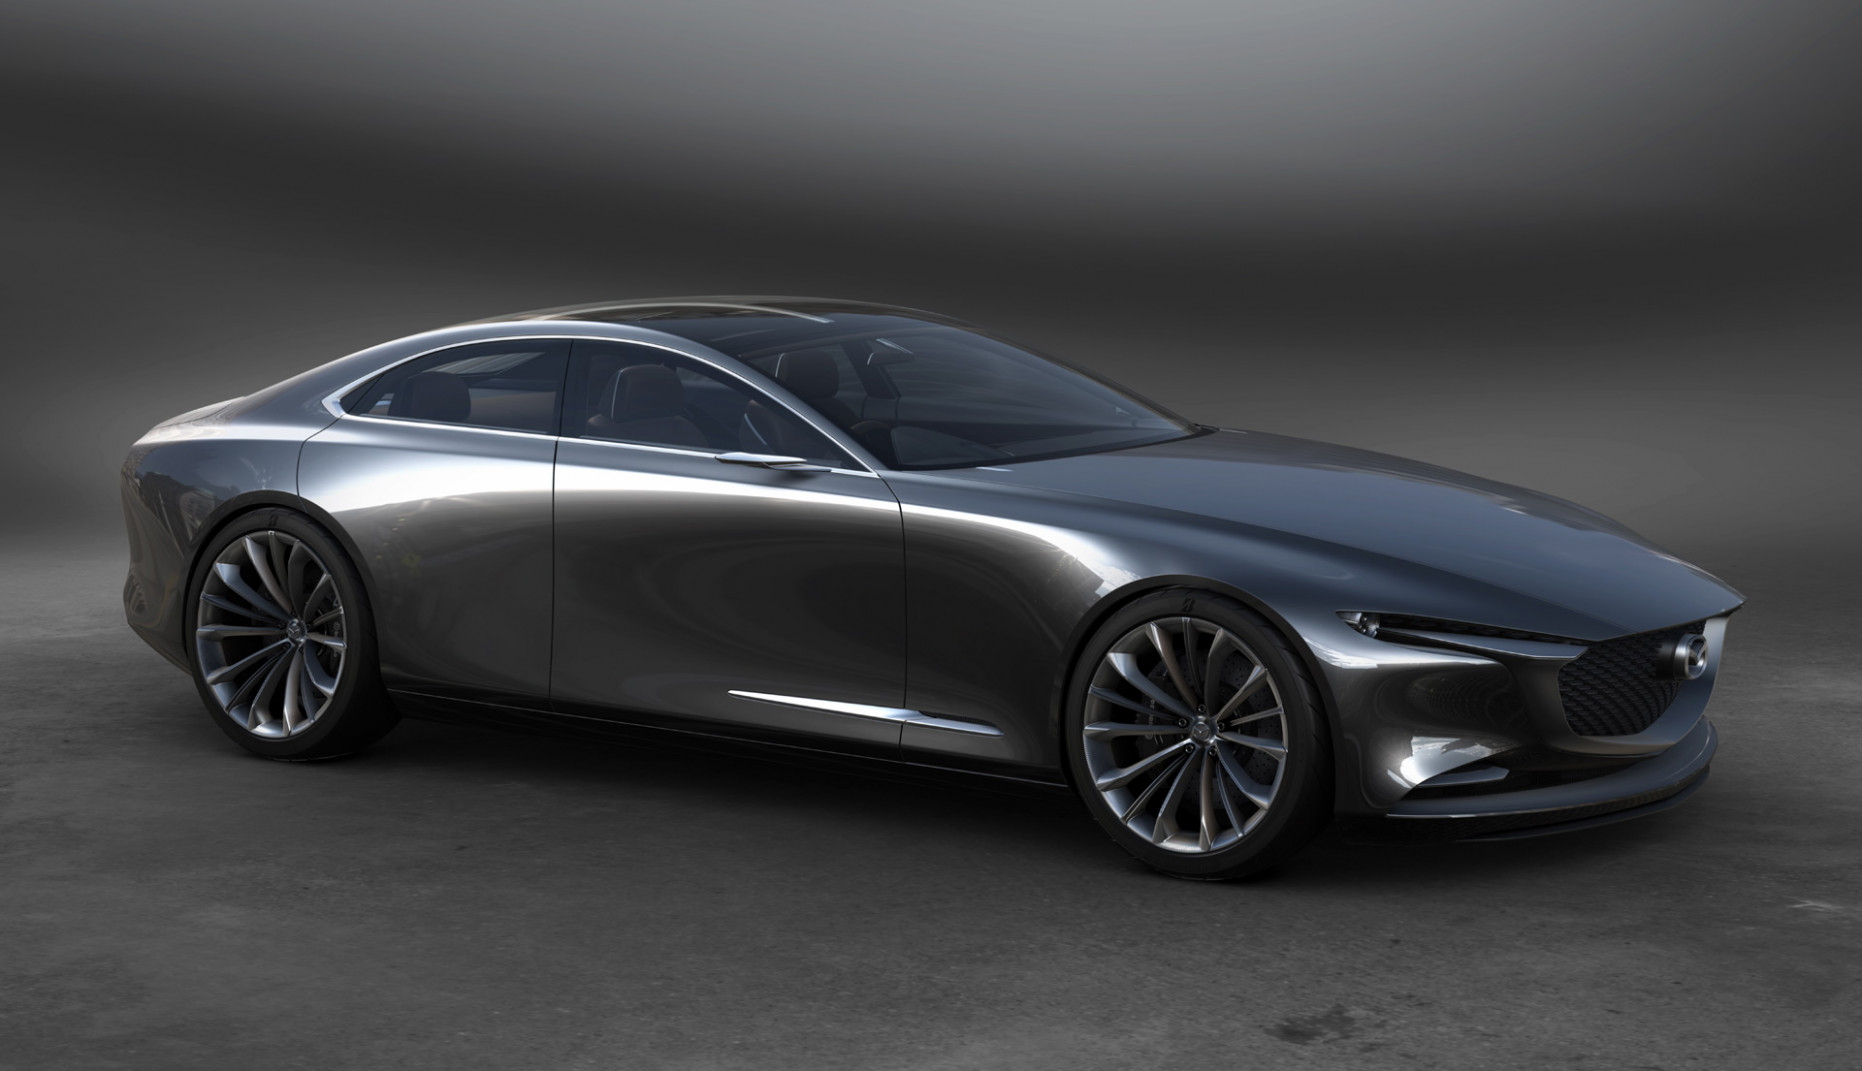 Release Date and Concept When Is The 2022 Mazda 6 Coming Out